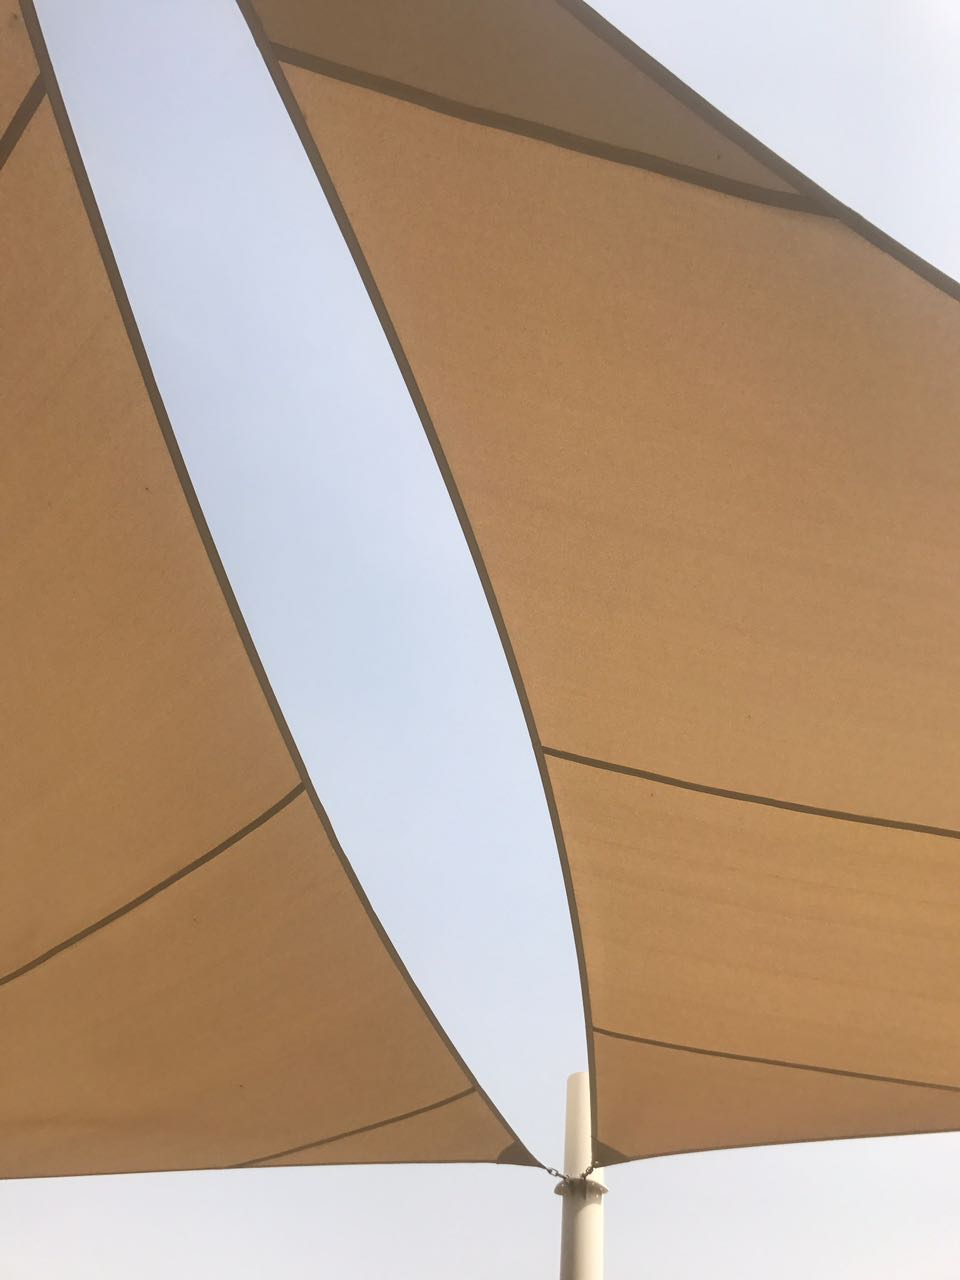 triangle sail shades installation in abu dhabi